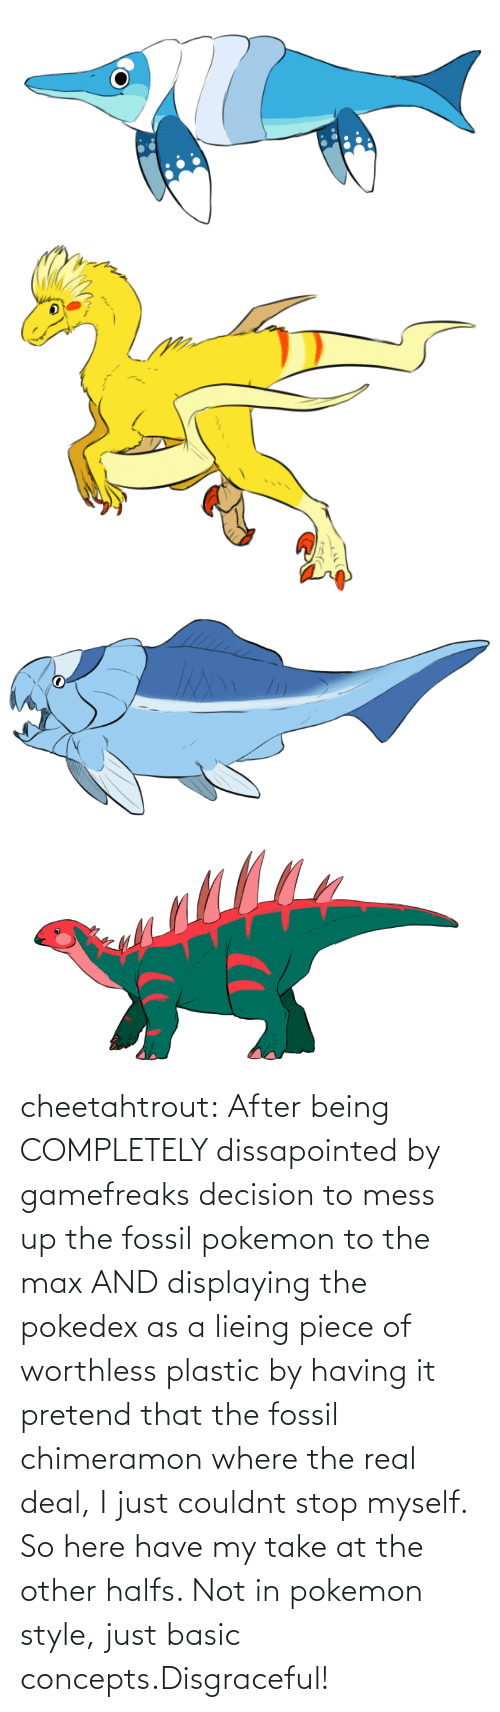 mess up: cheetahtrout:  After being COMPLETELY dissapointed by gamefreaks decision to mess up the fossil pokemon to the max AND displaying the pokedex as a lieing piece of worthless plastic by having it pretend that the fossil chimeramon where the real deal, I just couldnt stop myself. So here have my take at the other halfs. Not in pokemon style, just basic concepts.Disgraceful!